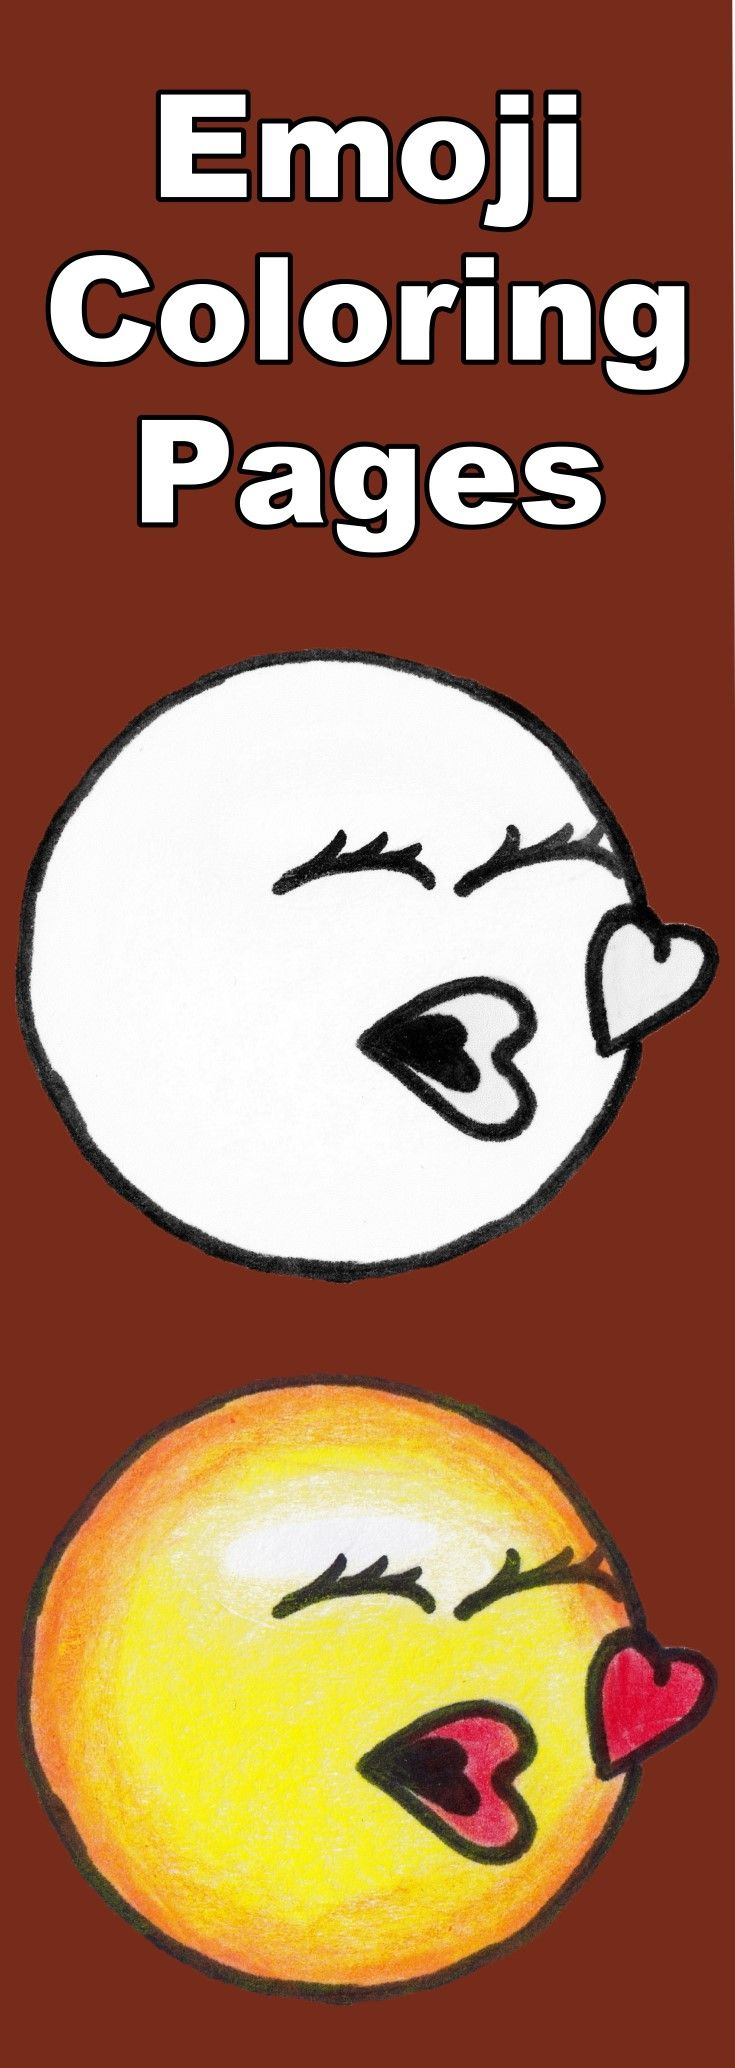 Download This Free Kissing Emoji Coloring Page For Kids Then Follow